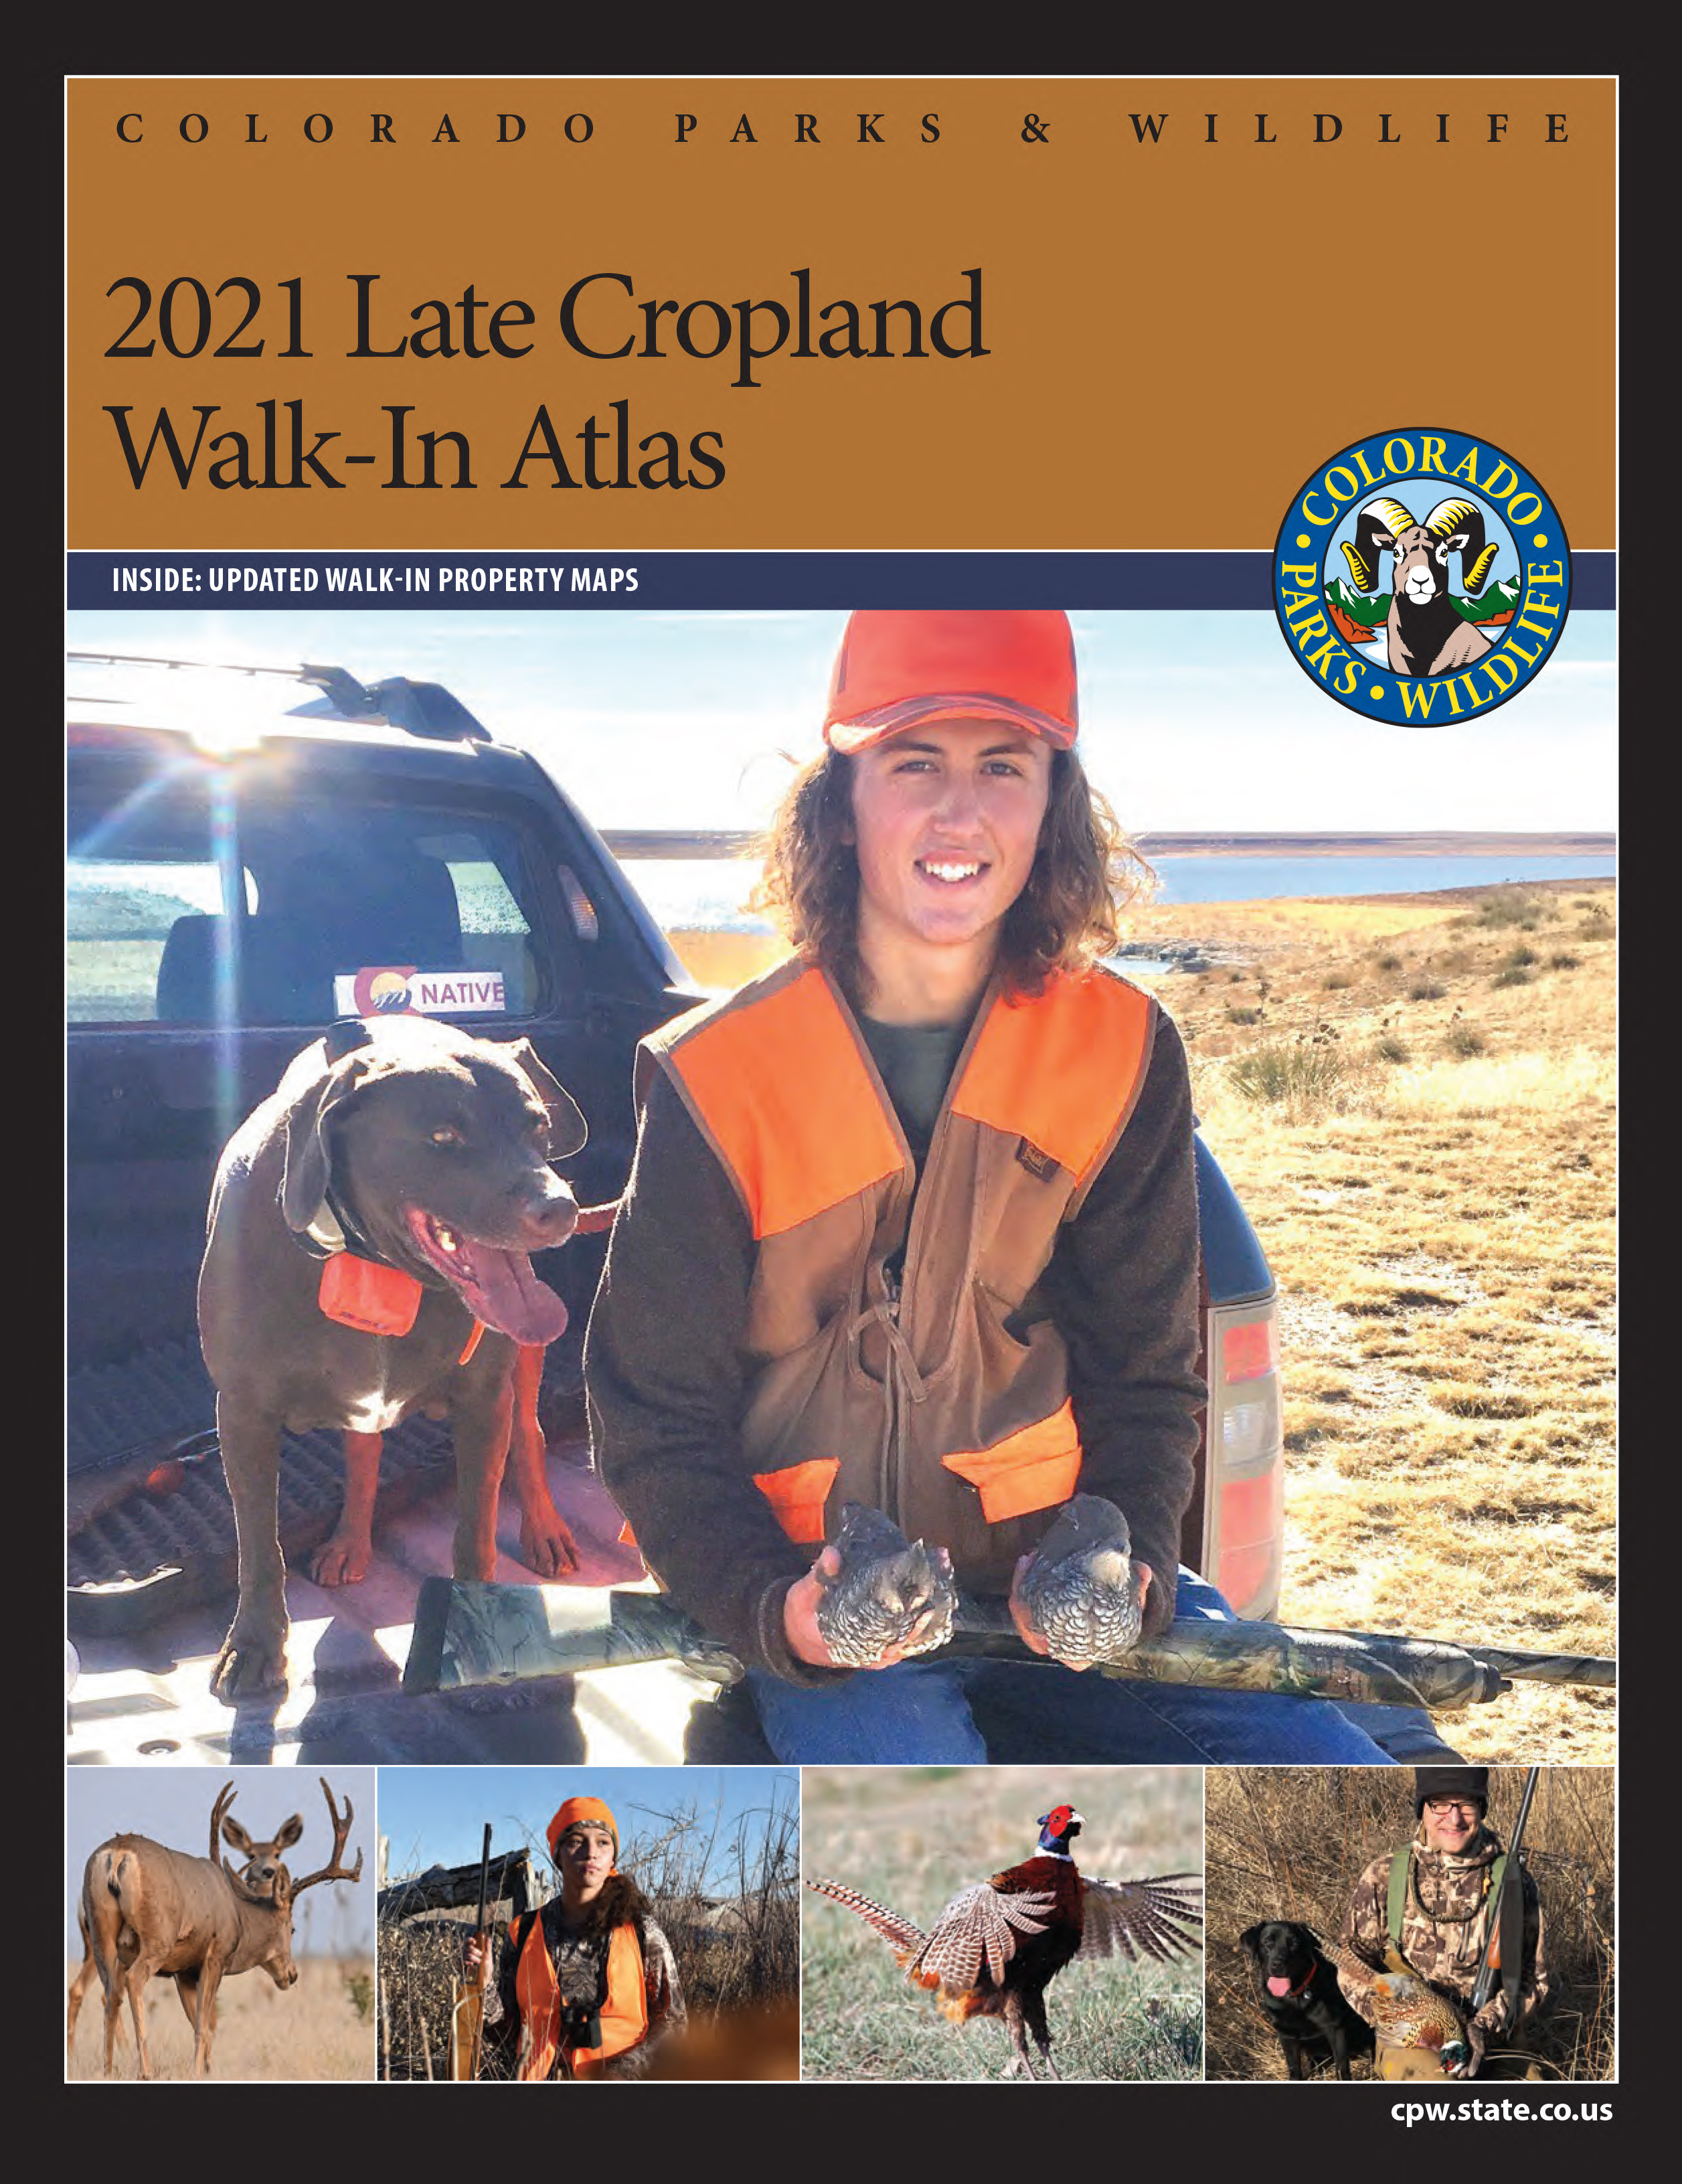 Late Cropland Brochure